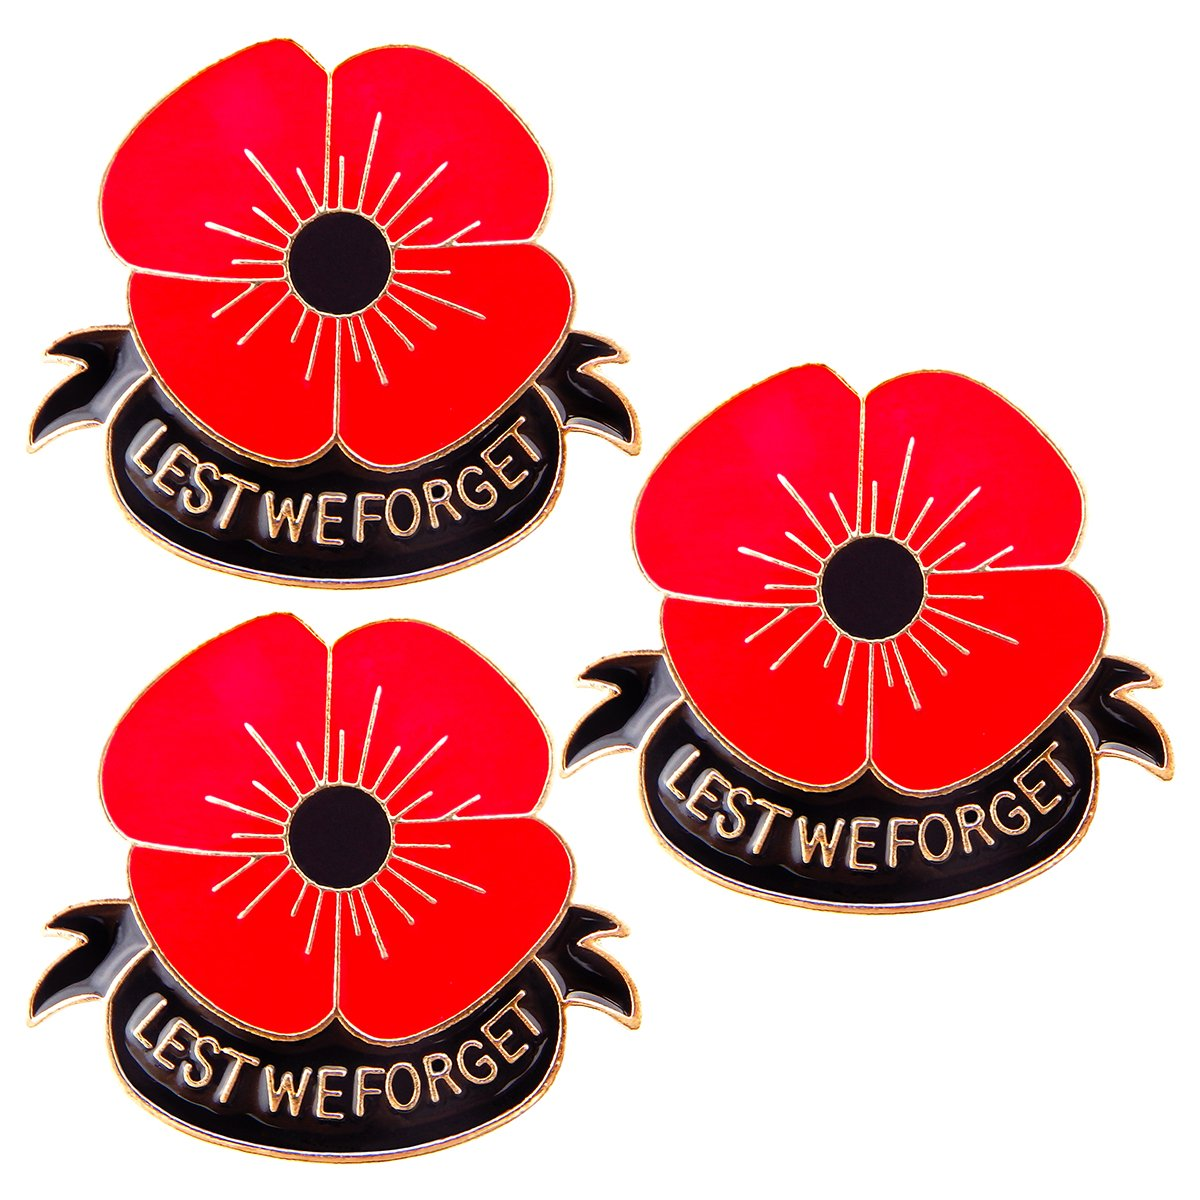 3 PCS Enamel Poppy Pin Badge Remembrance Memorial Day Gifts Lest We Forget